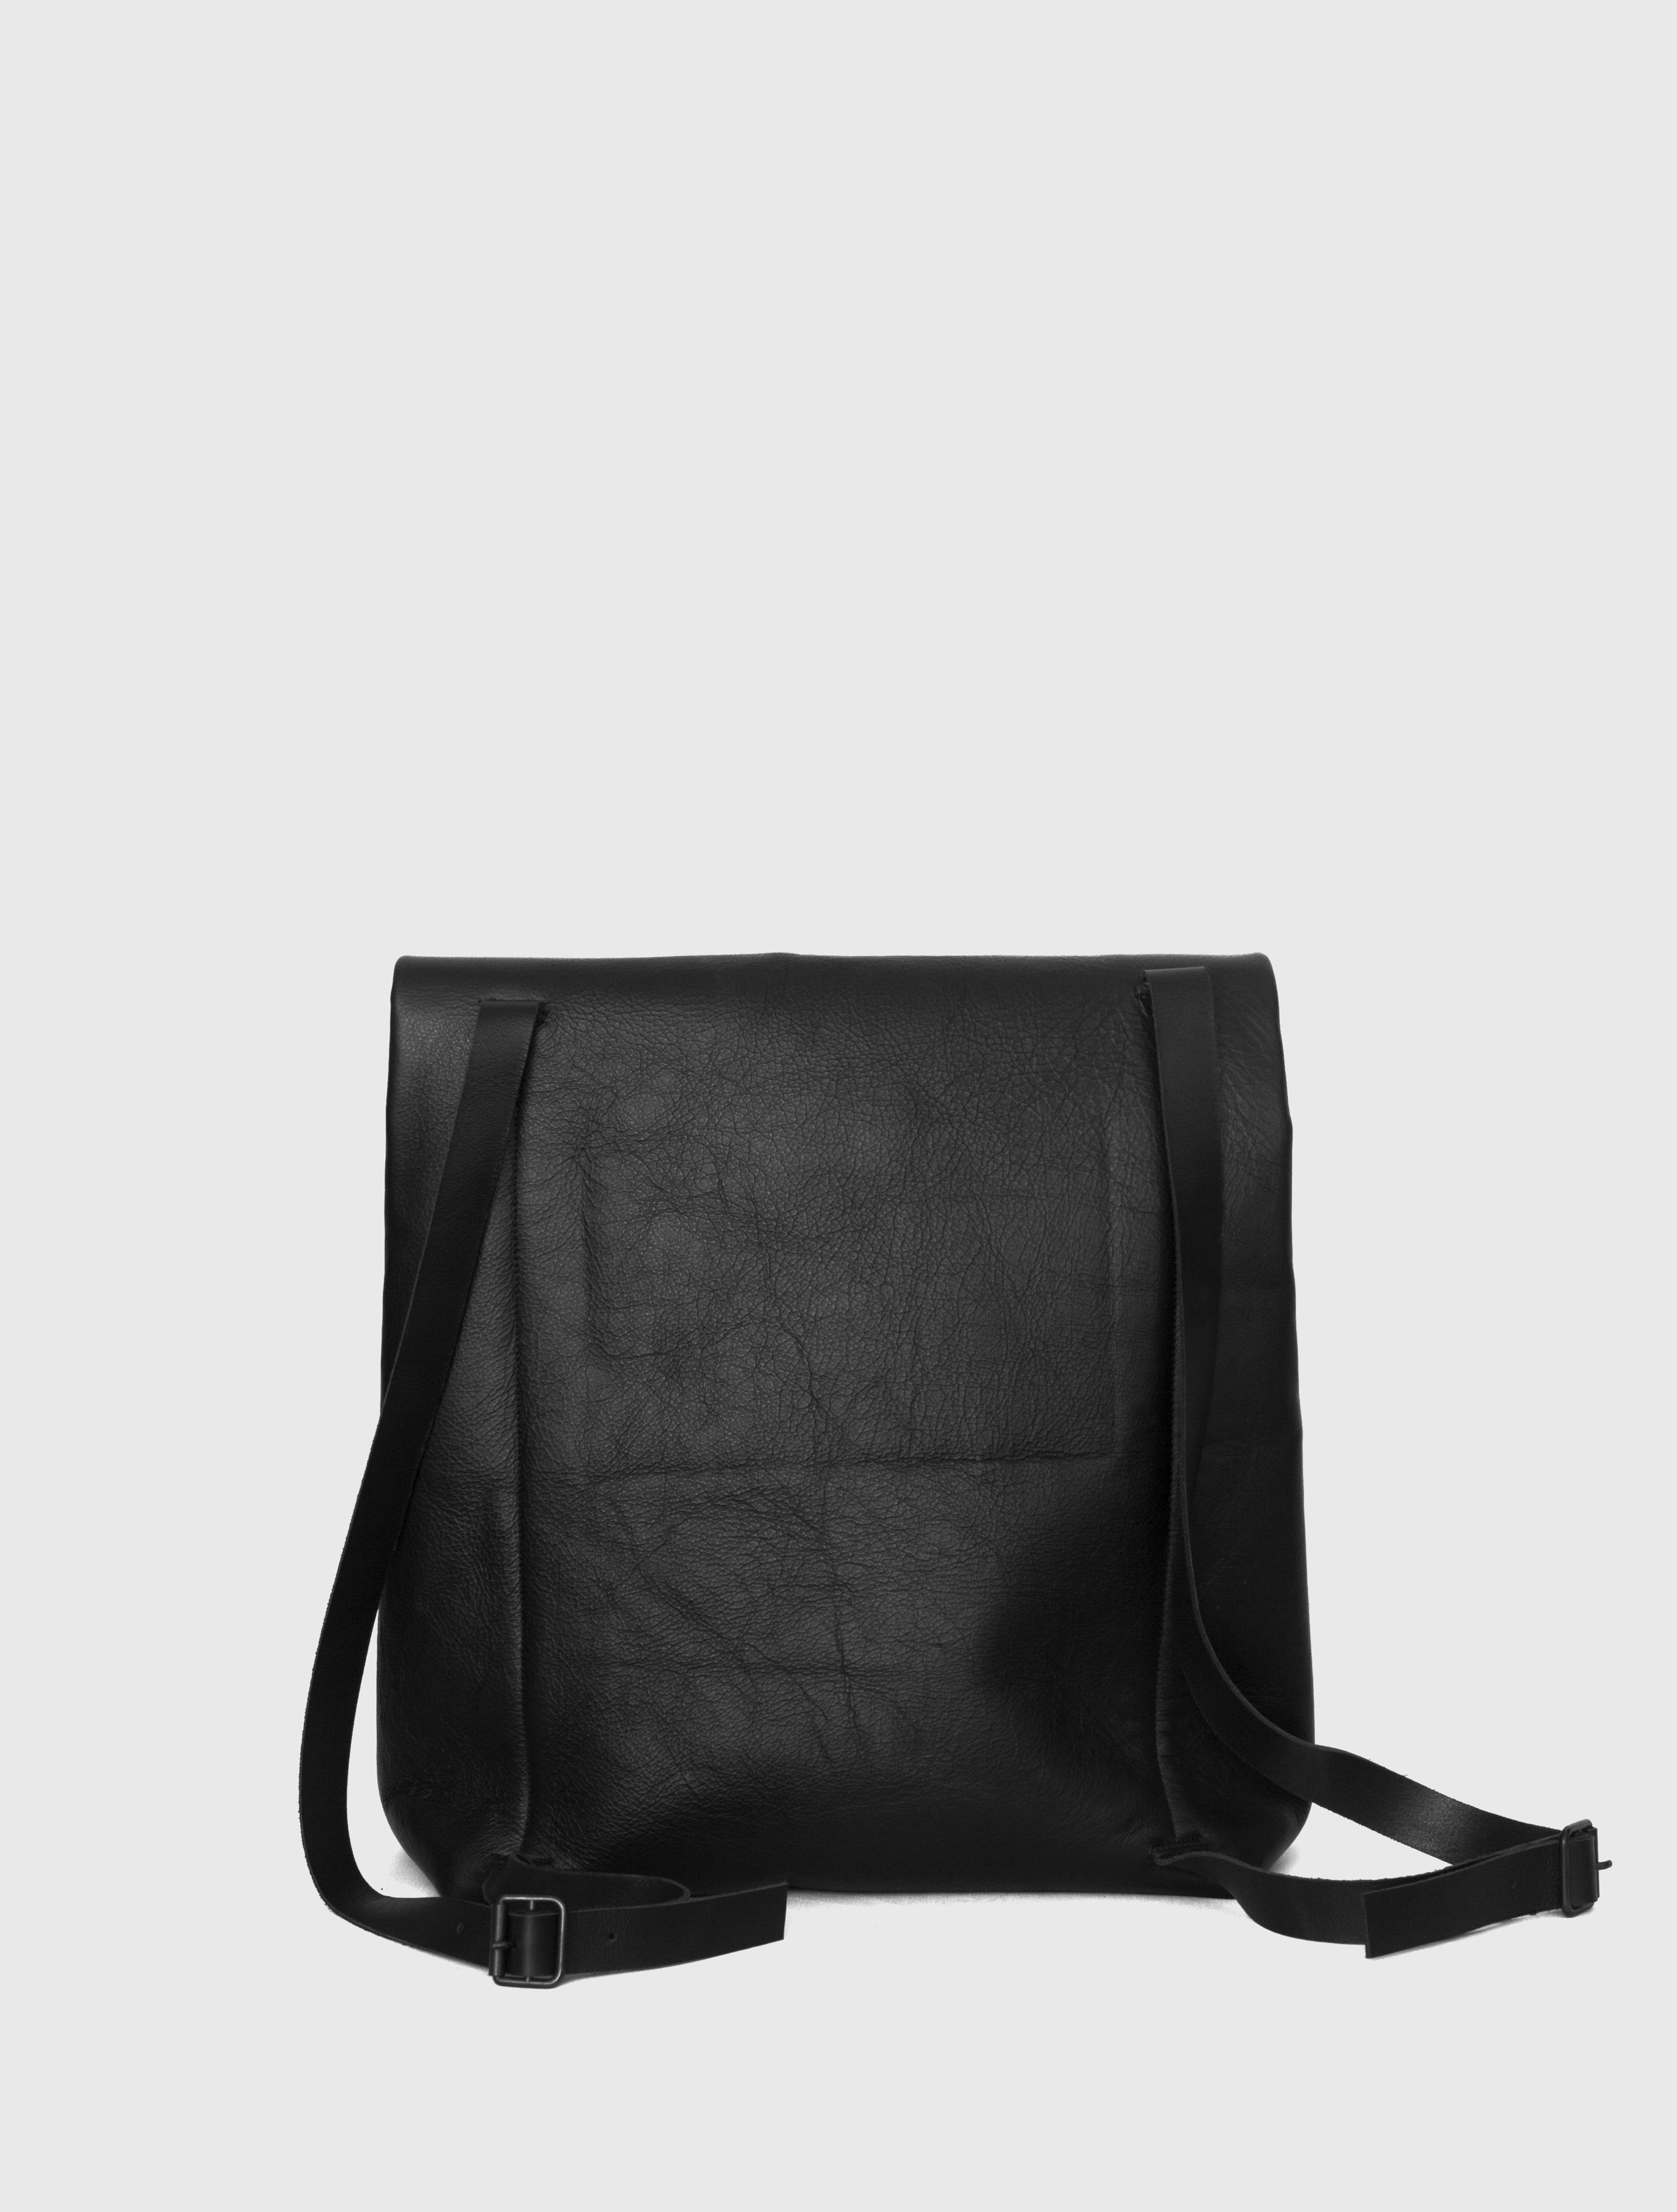 LEATHER X NEOPRENE BACKPACK_0004_Layer 3.jpg